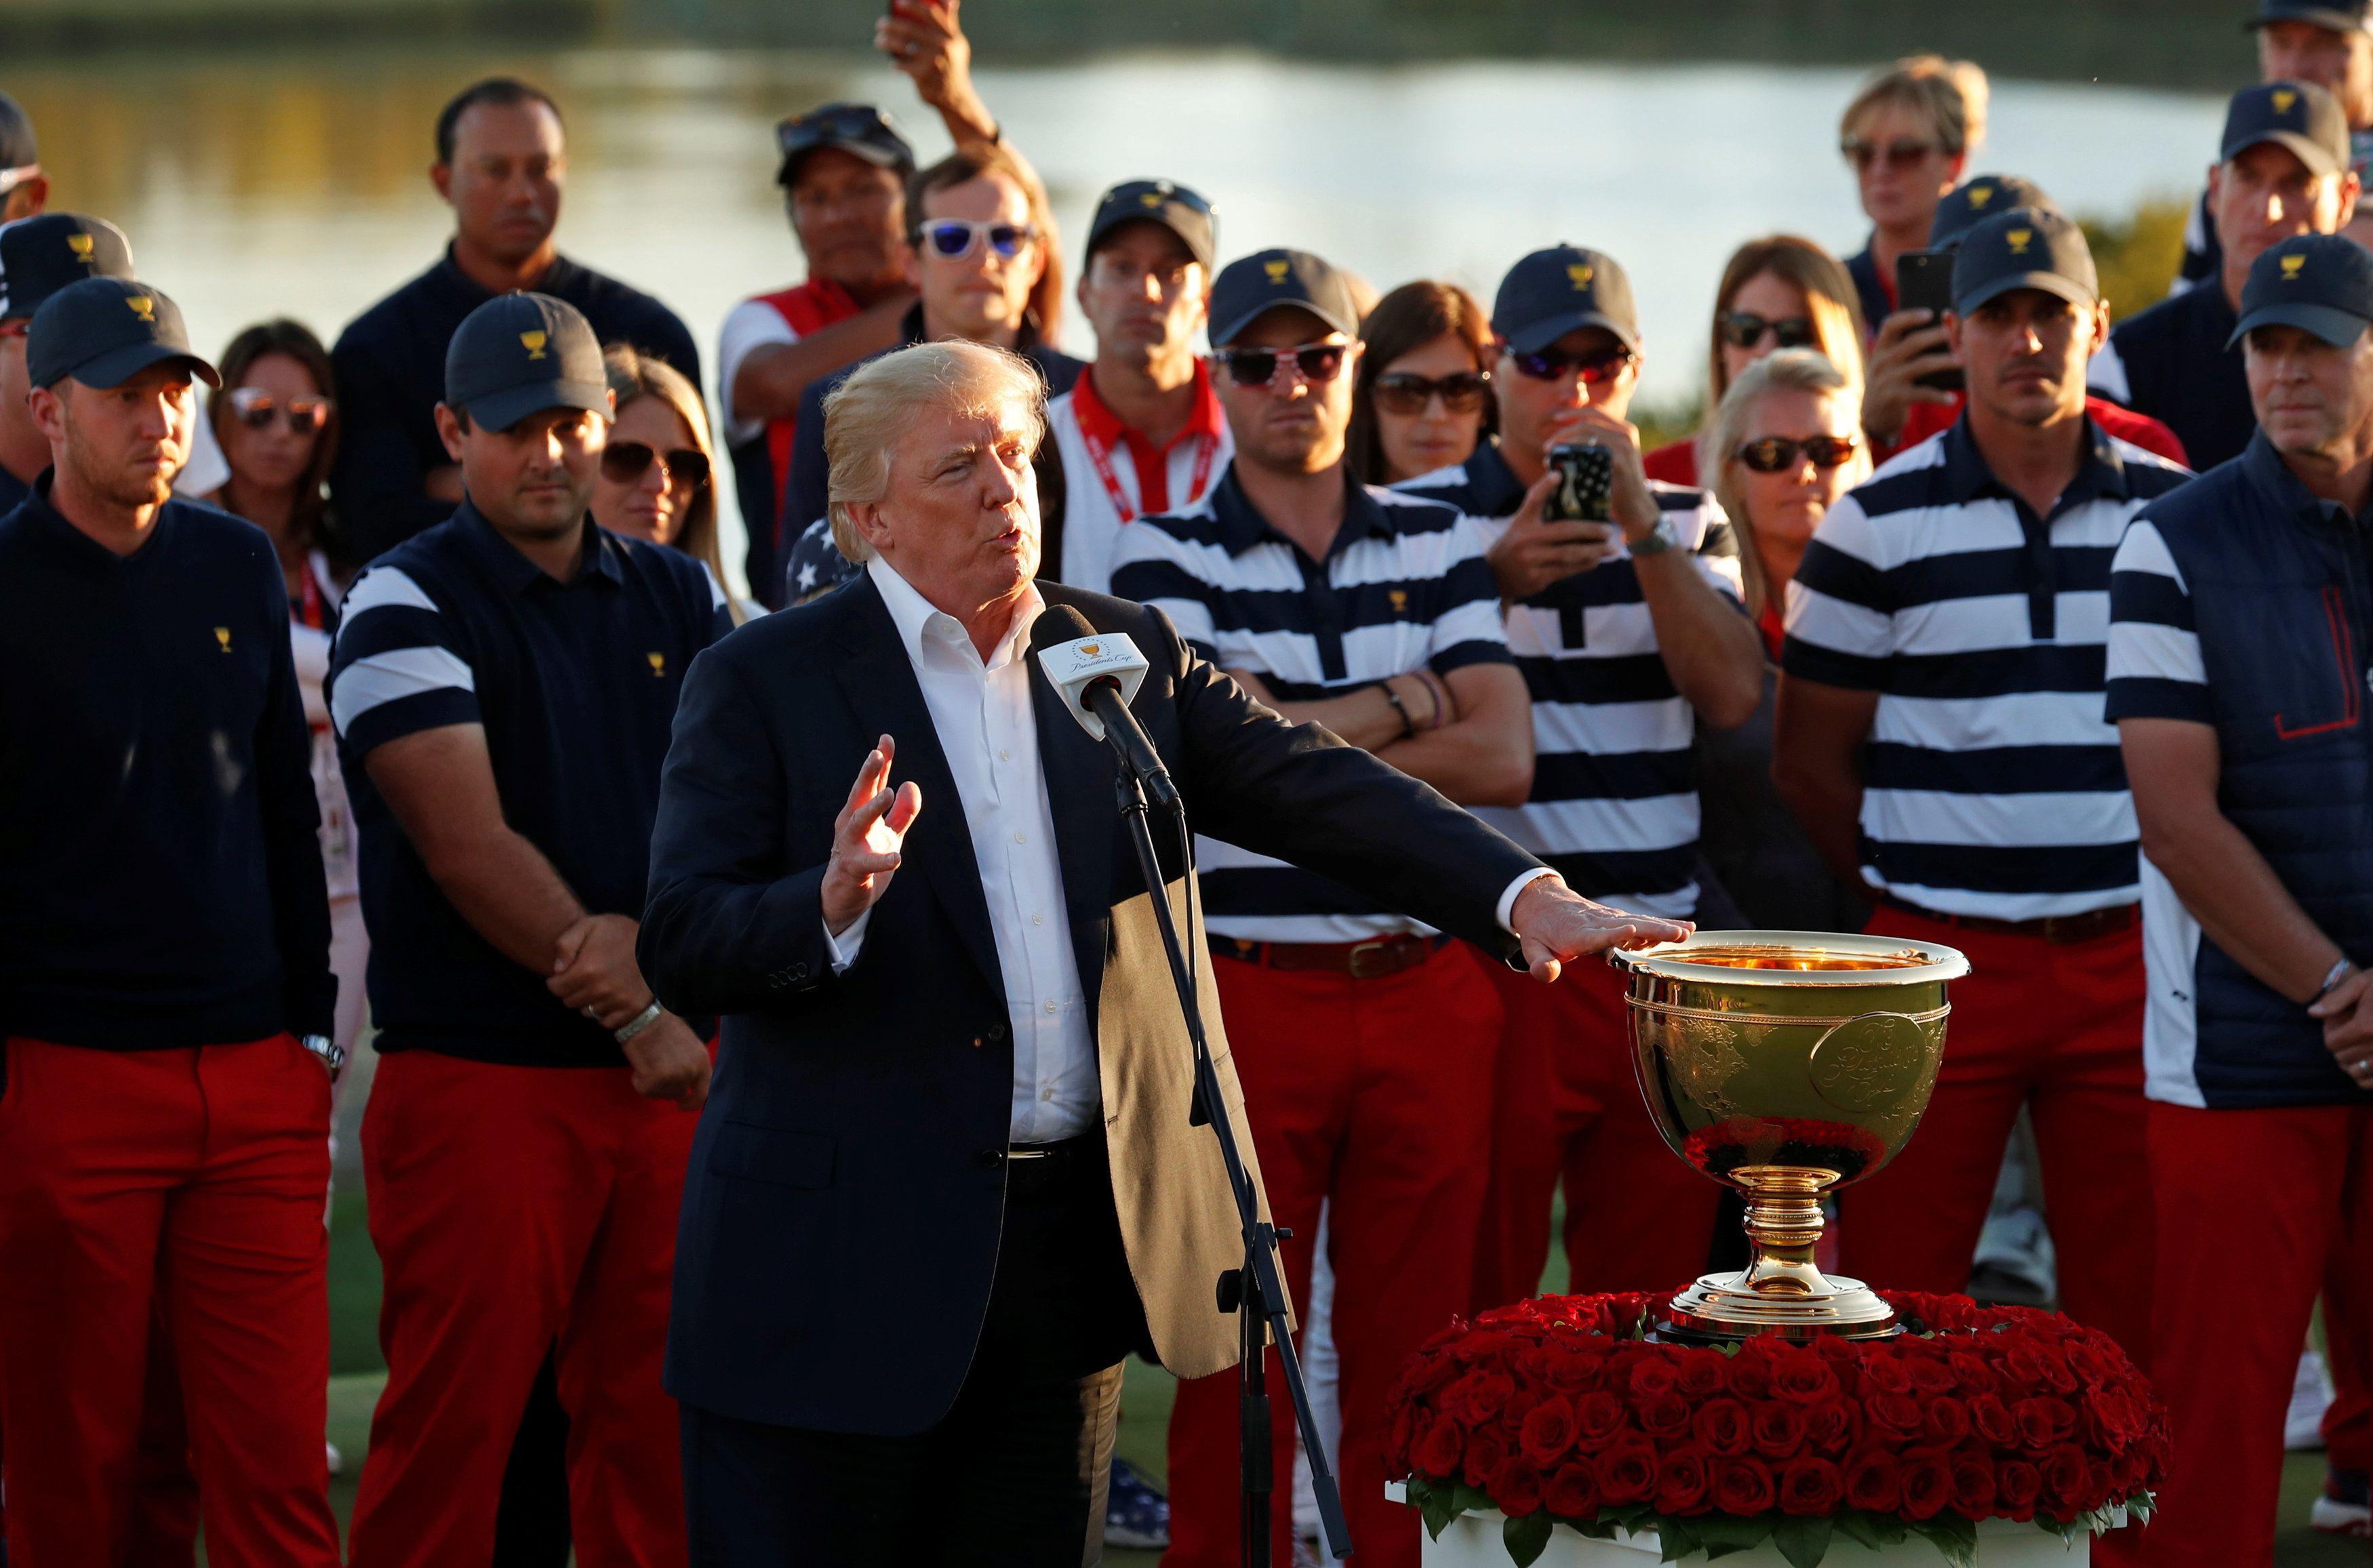 U.S. President Donald Trump speaks before presenting the trophy to the U.S. team captain Steve Stricker at the conclusion of the Presidents Cup golf tournament at Liberty National Golf Club in Jersey City, New Jersey, U.S., October 1, 2017. REUTERS/Kevin Lamarque